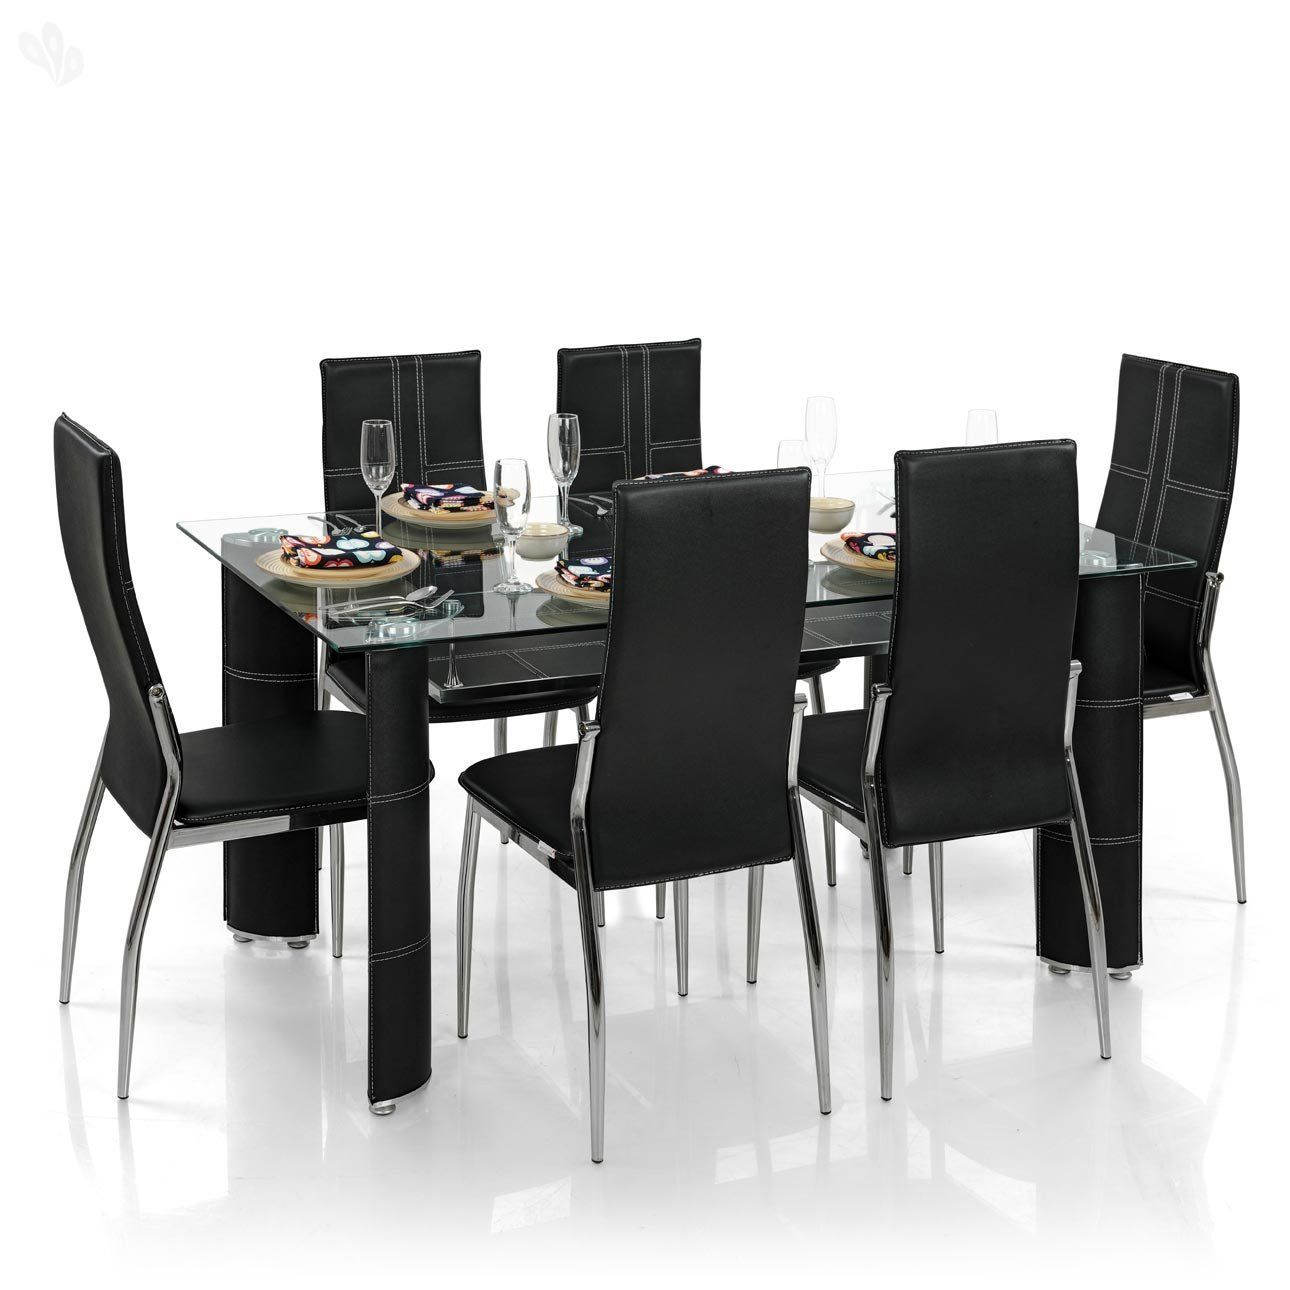 Merveilleux Royal Oak Modern Geneva Dining Set With 6 Chairs (Black)   Best Home And  Kitchen Store